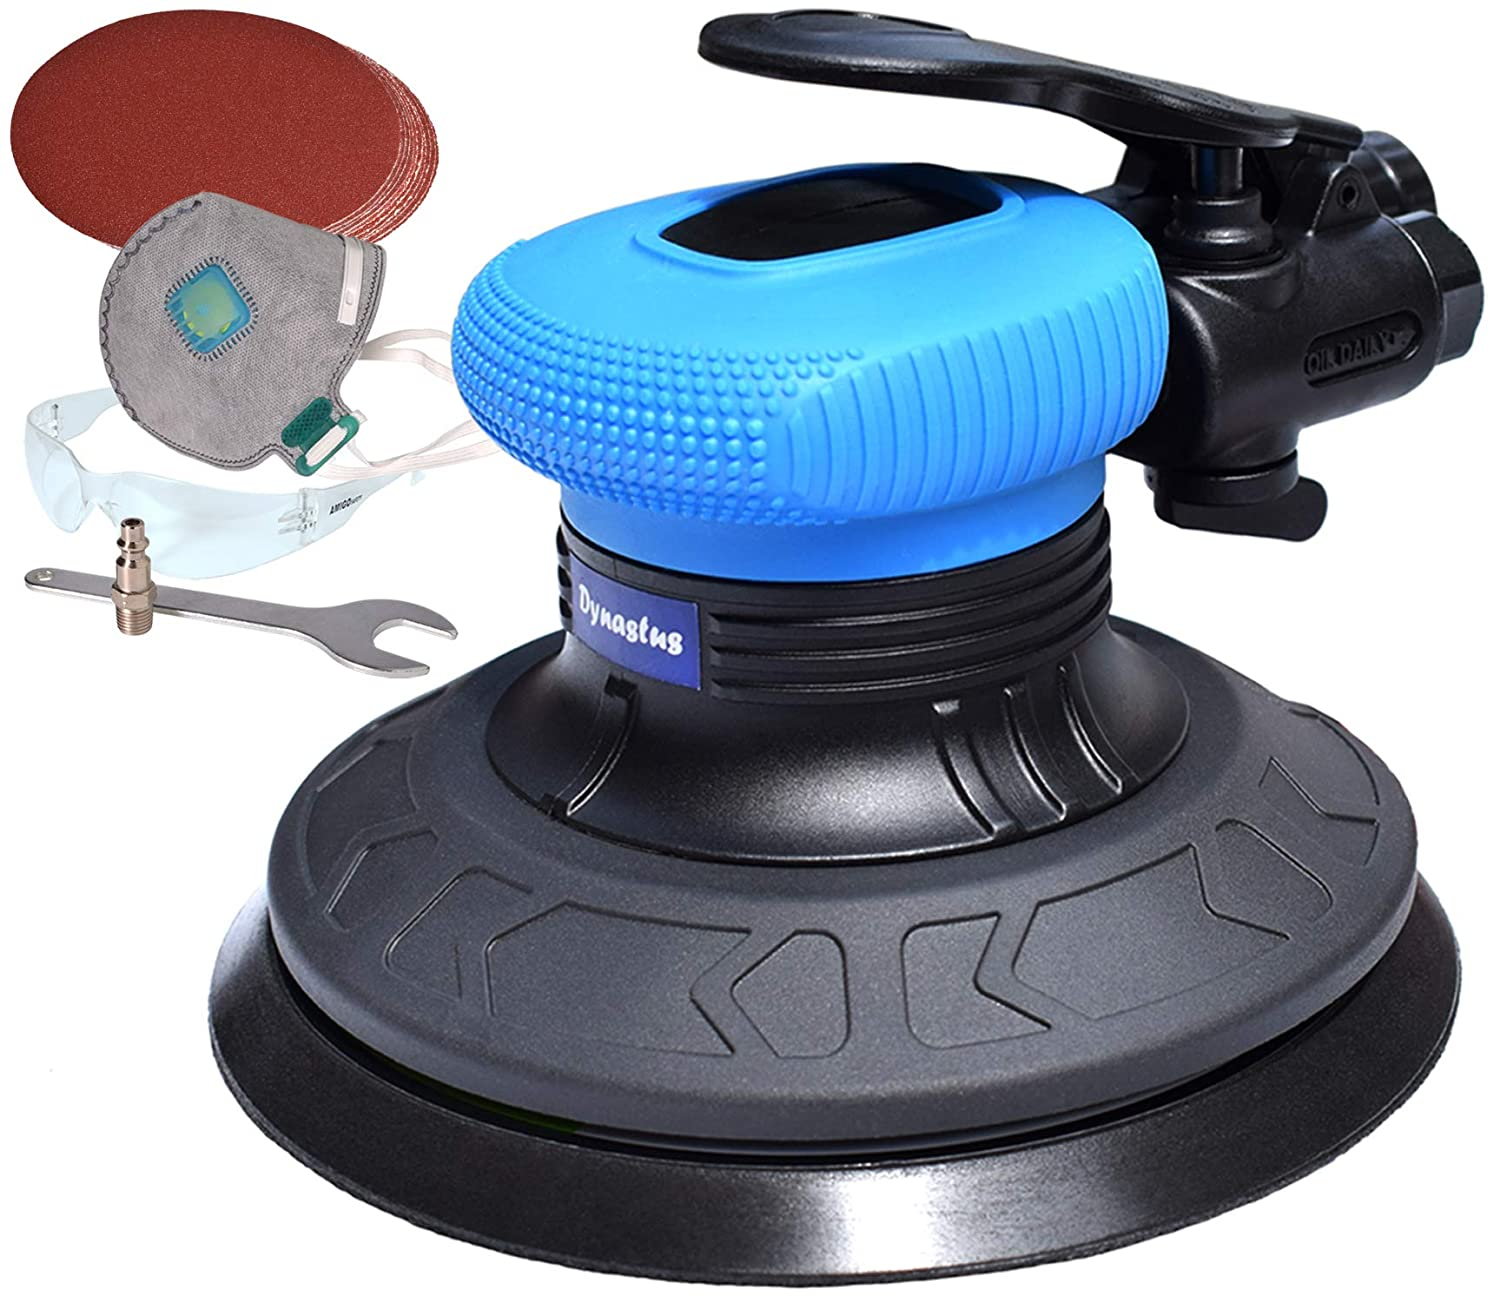 6-Inch Random Orbit Air Palm Sander, Dual Action Pneumatic Polisher with 10pcs Sanding Discs Pad & Protective kits